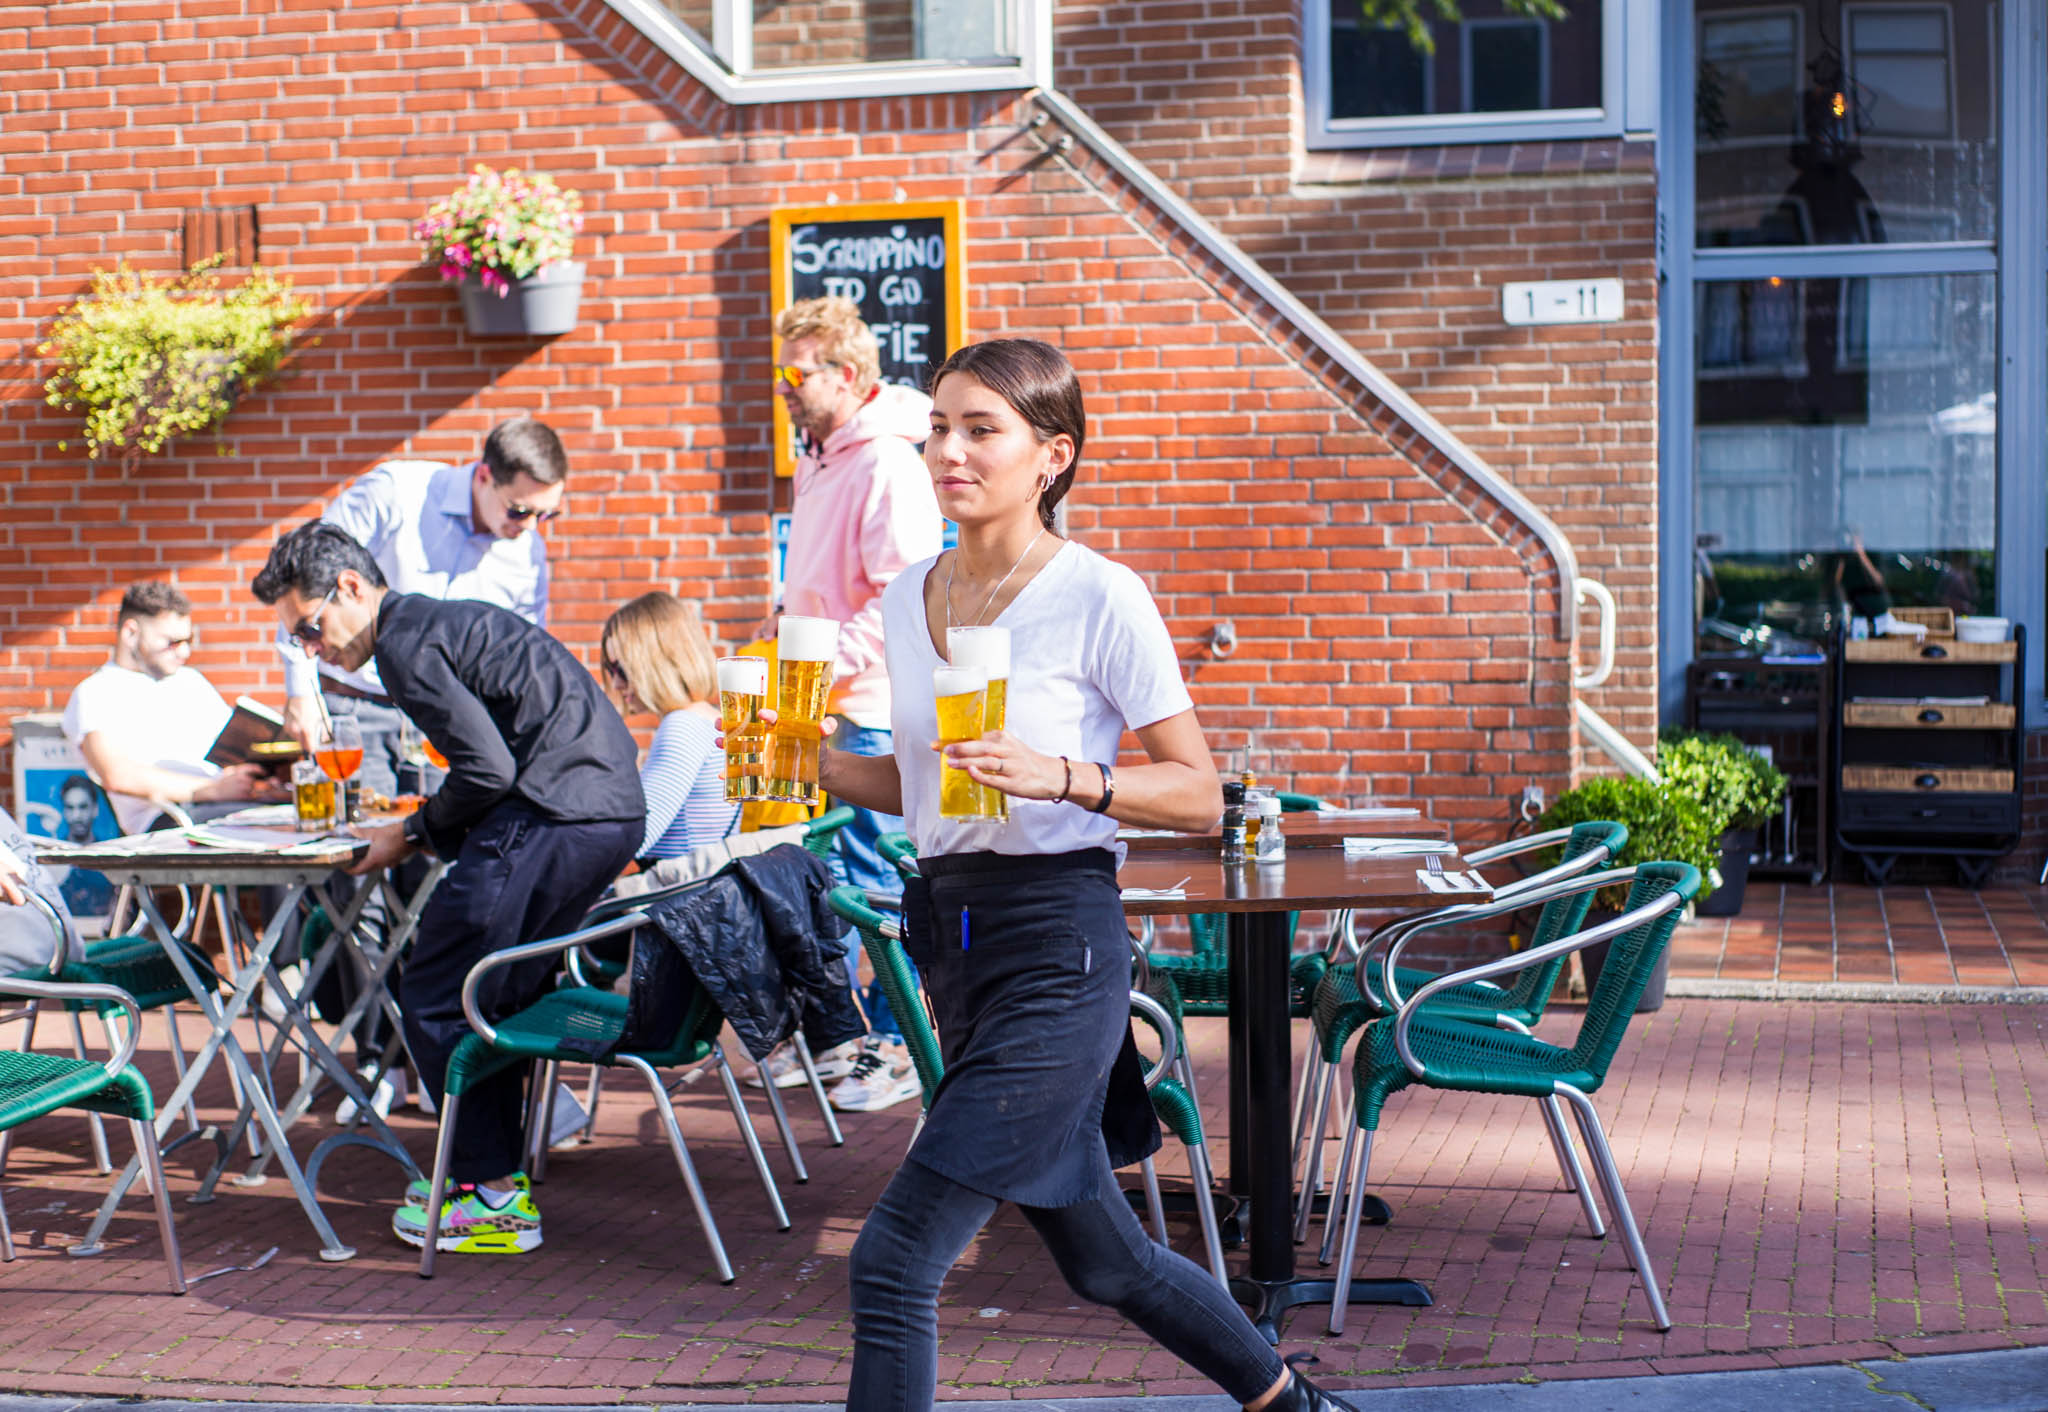 Waitress walking outside a restaurant with beer glasses